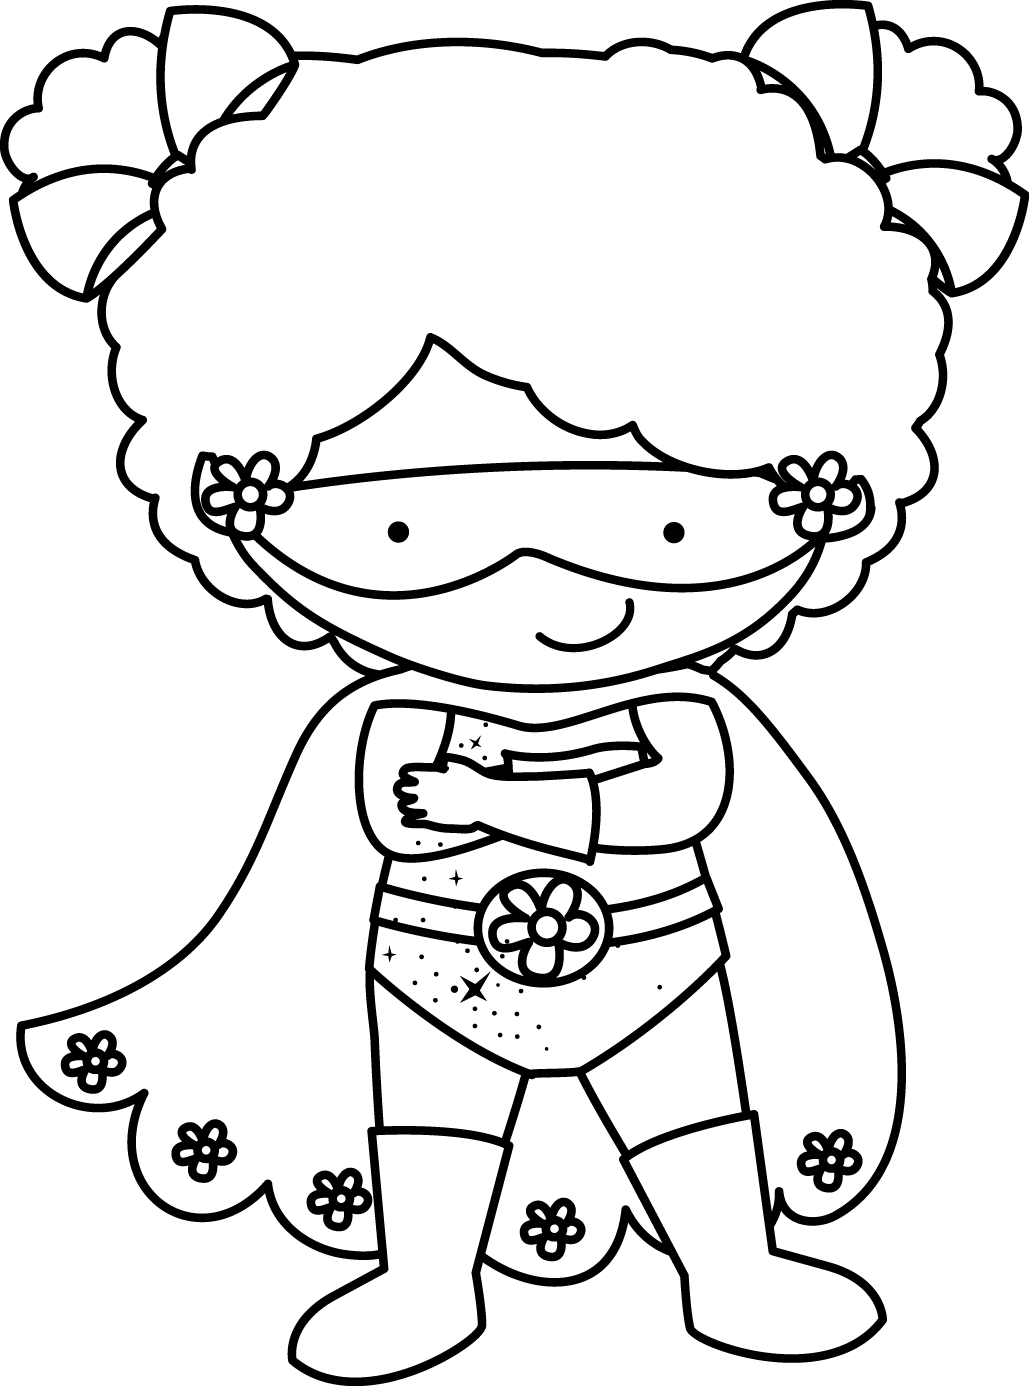 Supergirl Clipart Black And White Supergirl Black And